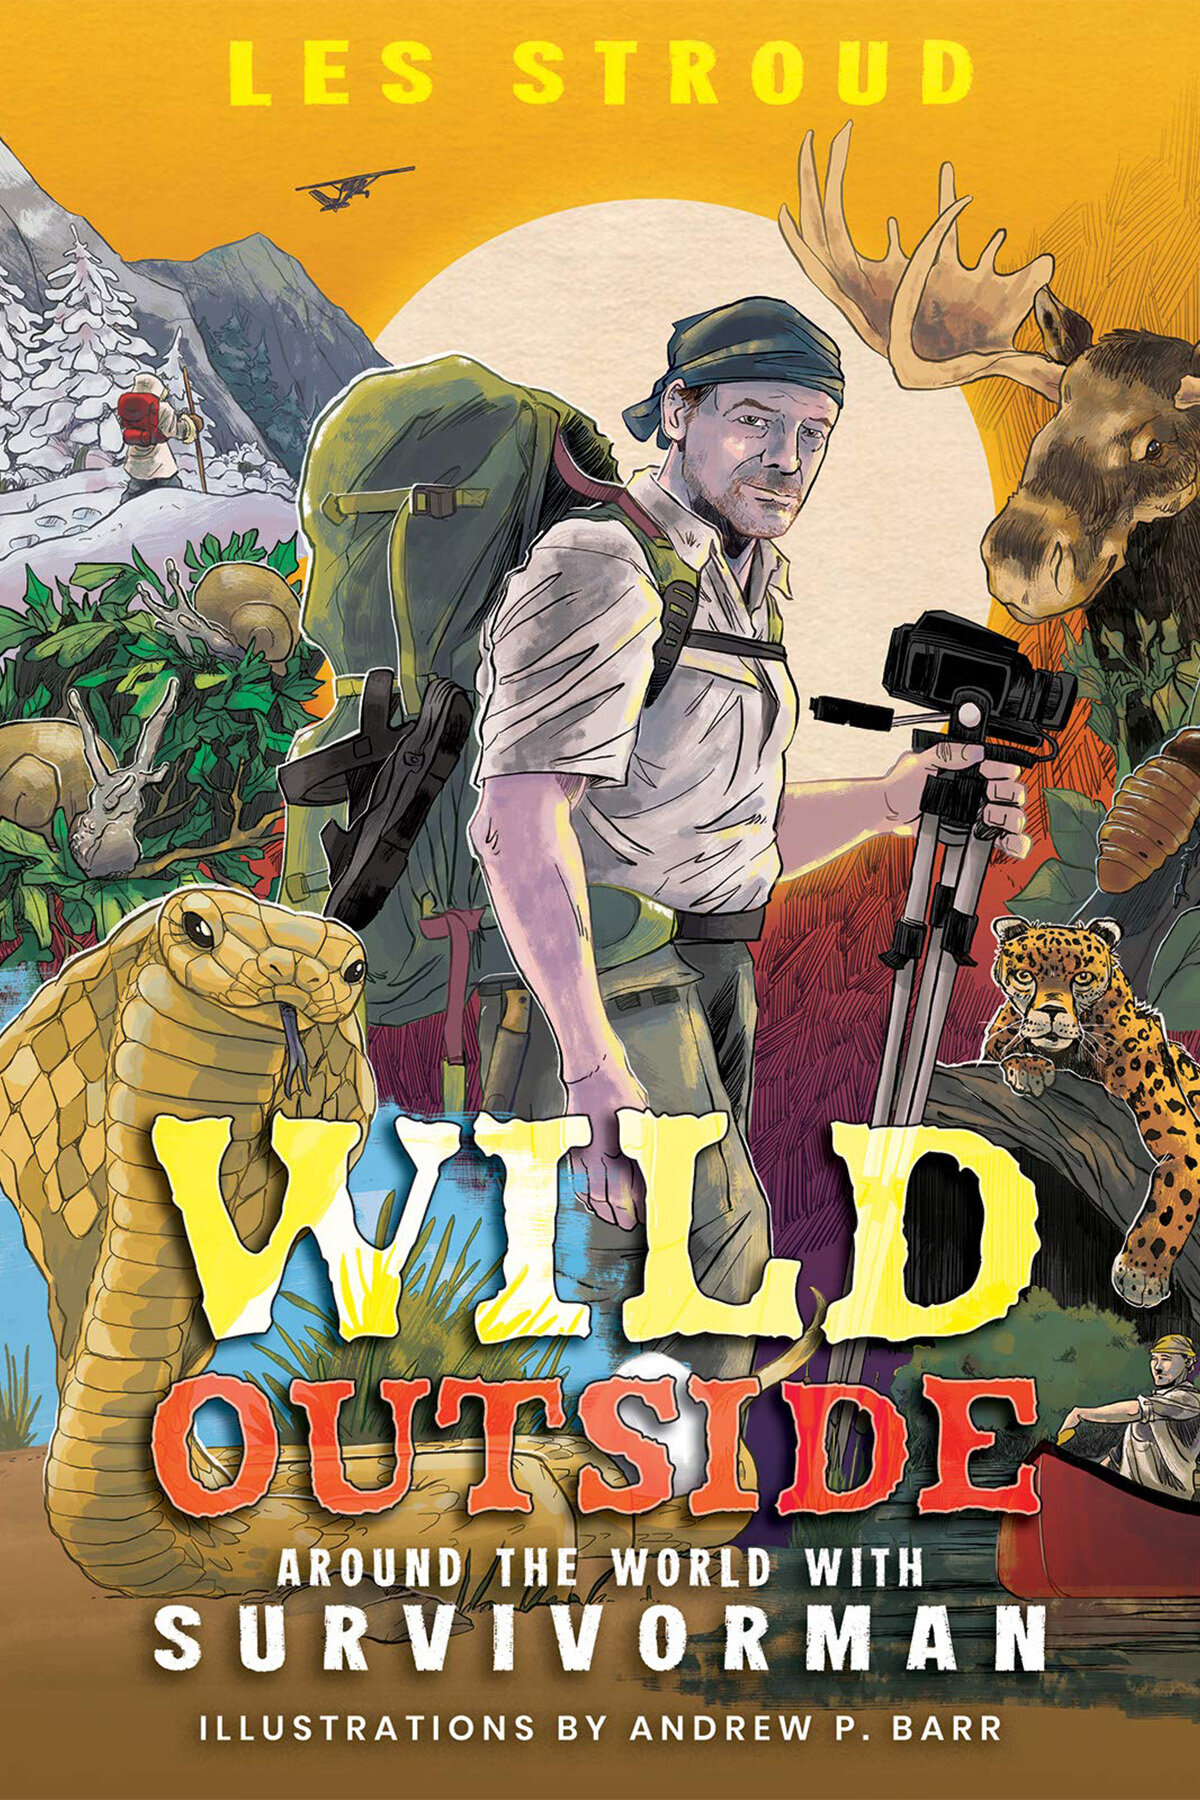 Wild Outside: Around the World with Survivorman by Les Stroud